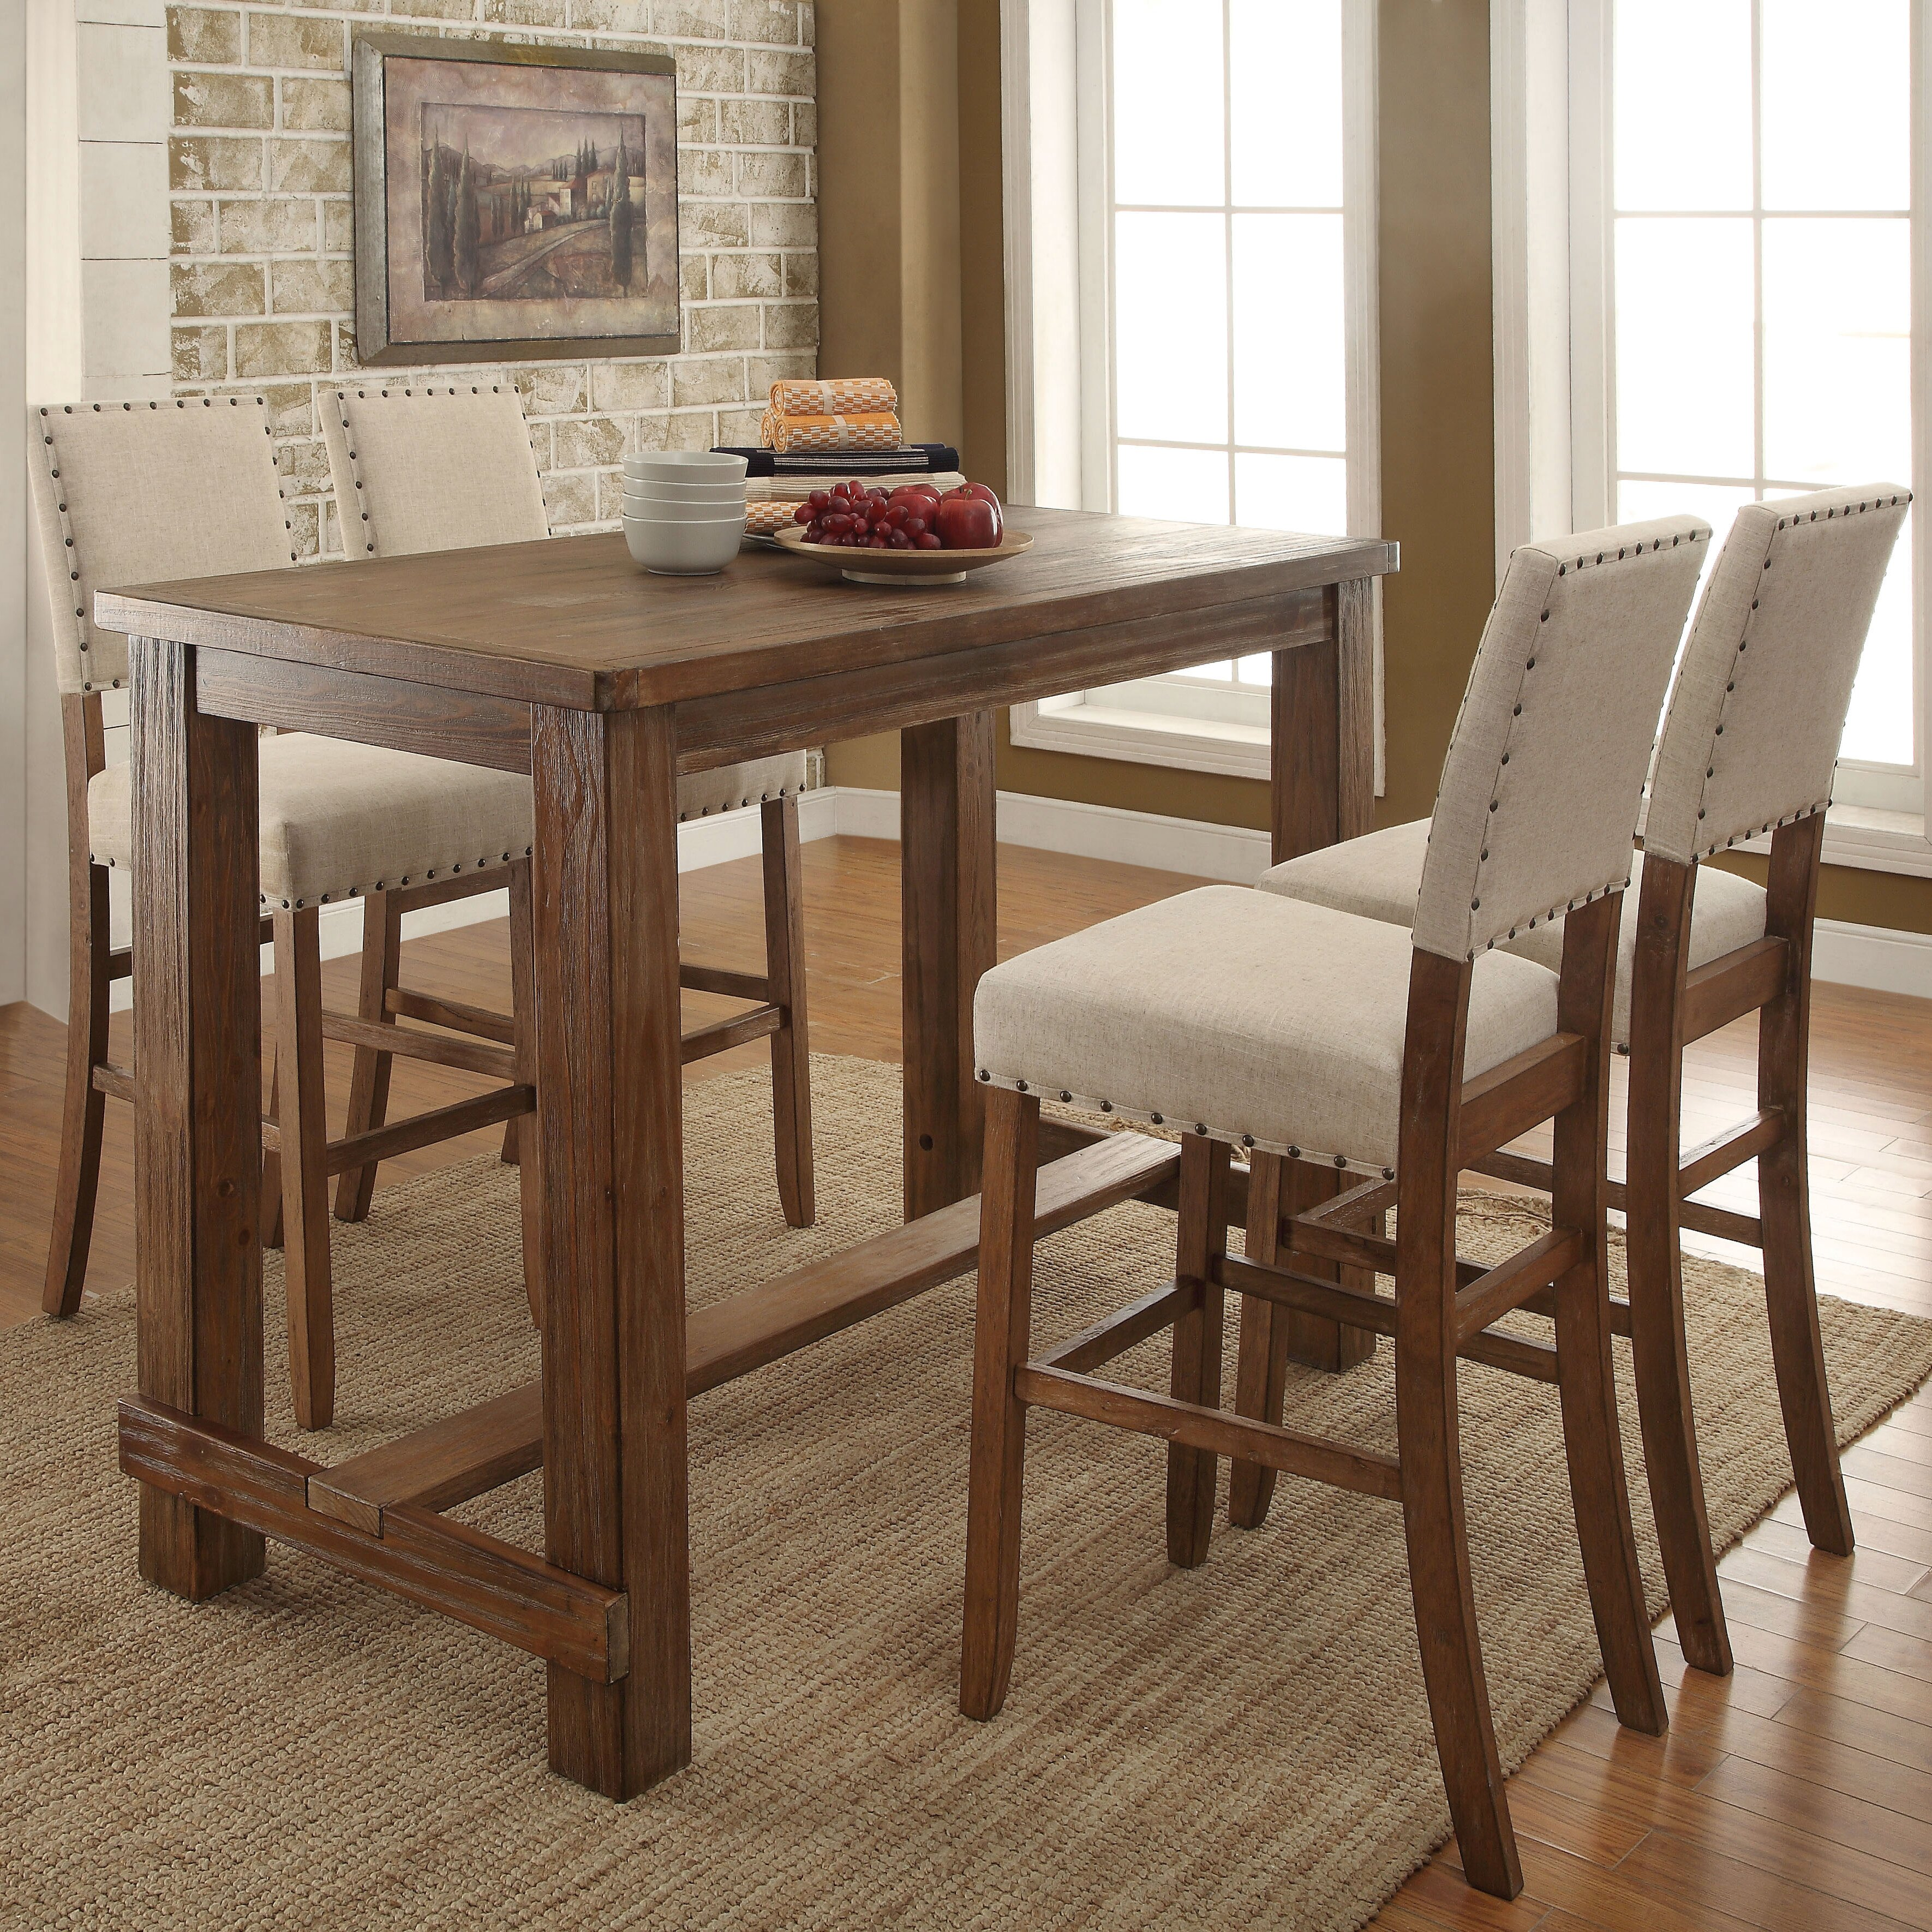 Kitchen Pub Table And Chairs Kitchen Pub Table Sets Tabetaranet